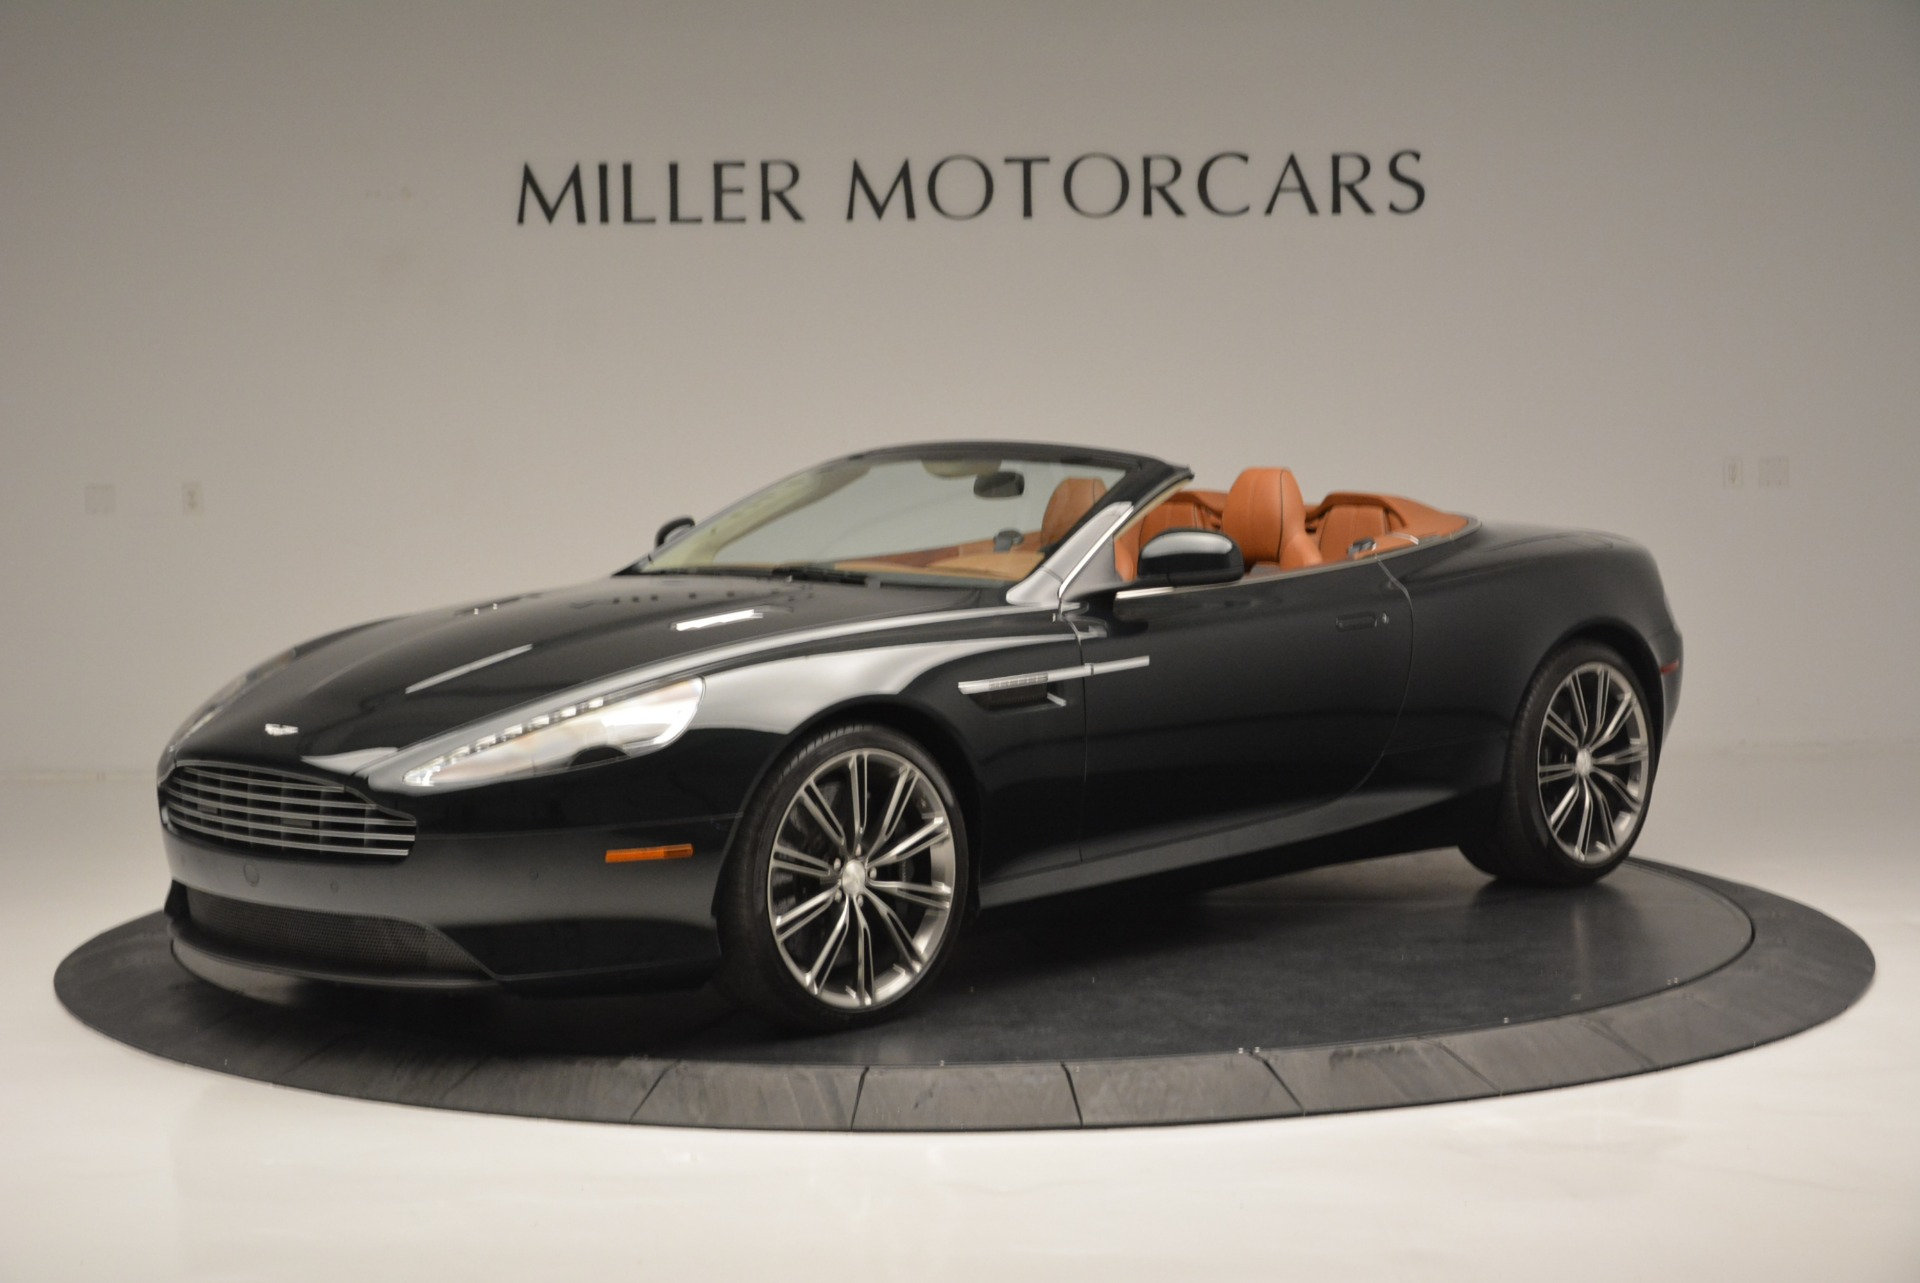 Pre Owned 2012 Aston Martin Virage Volante For Sale Special Pricing Aston Martin Of Greenwich Stock 7641